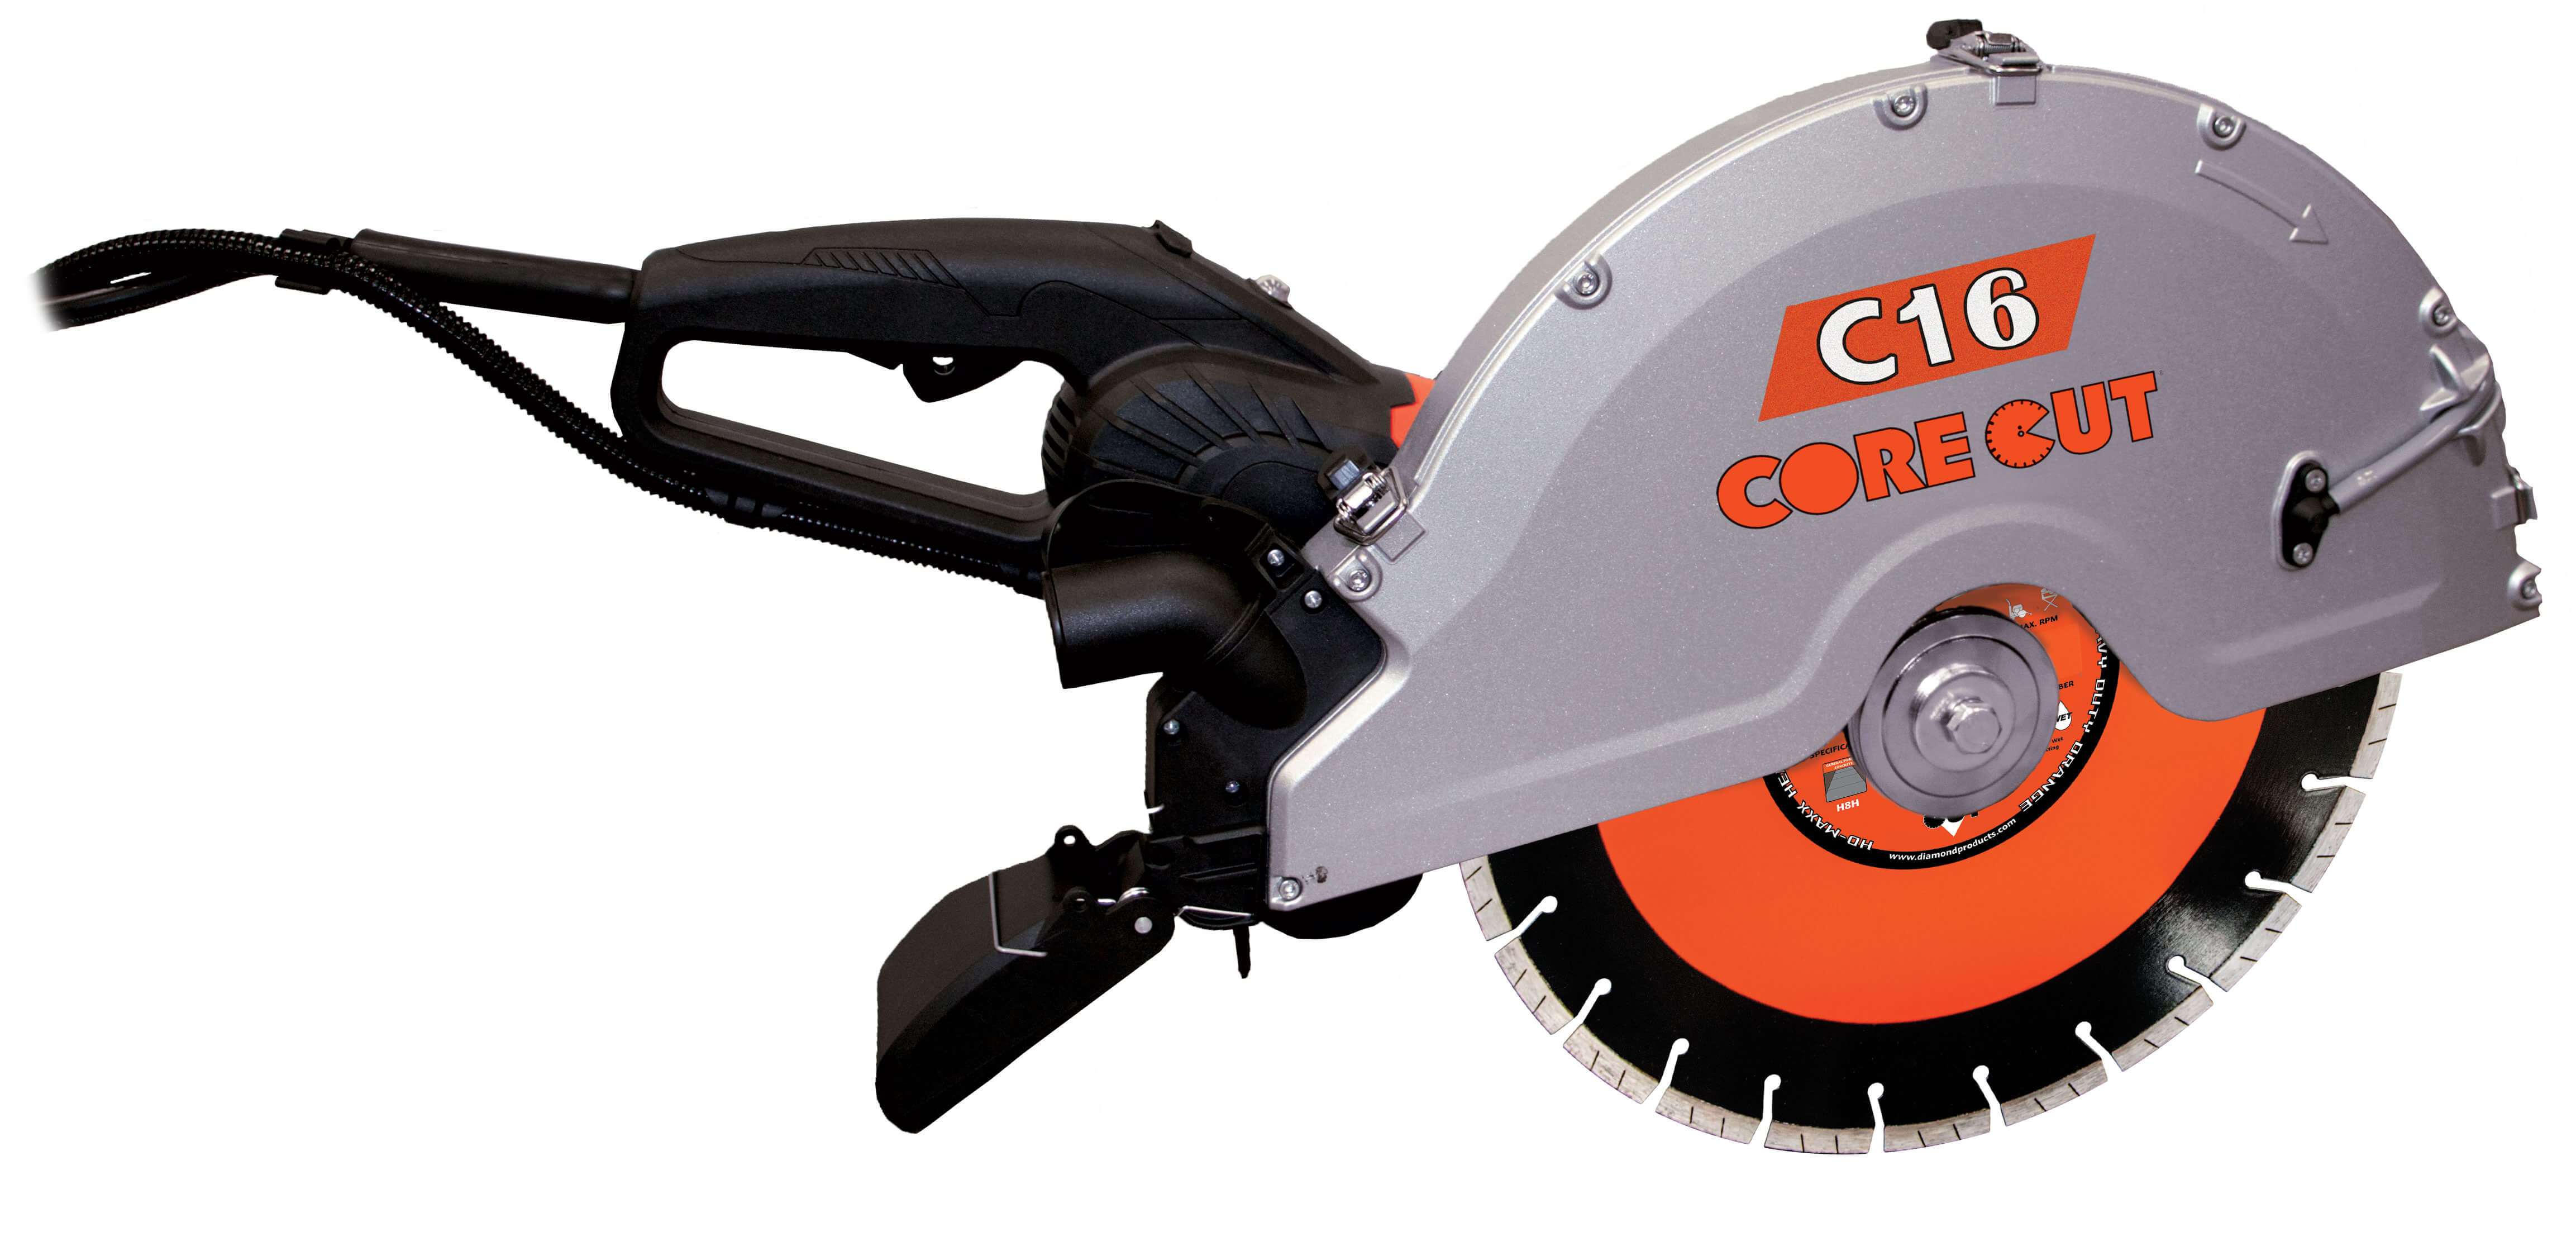 C16 Electric Saw